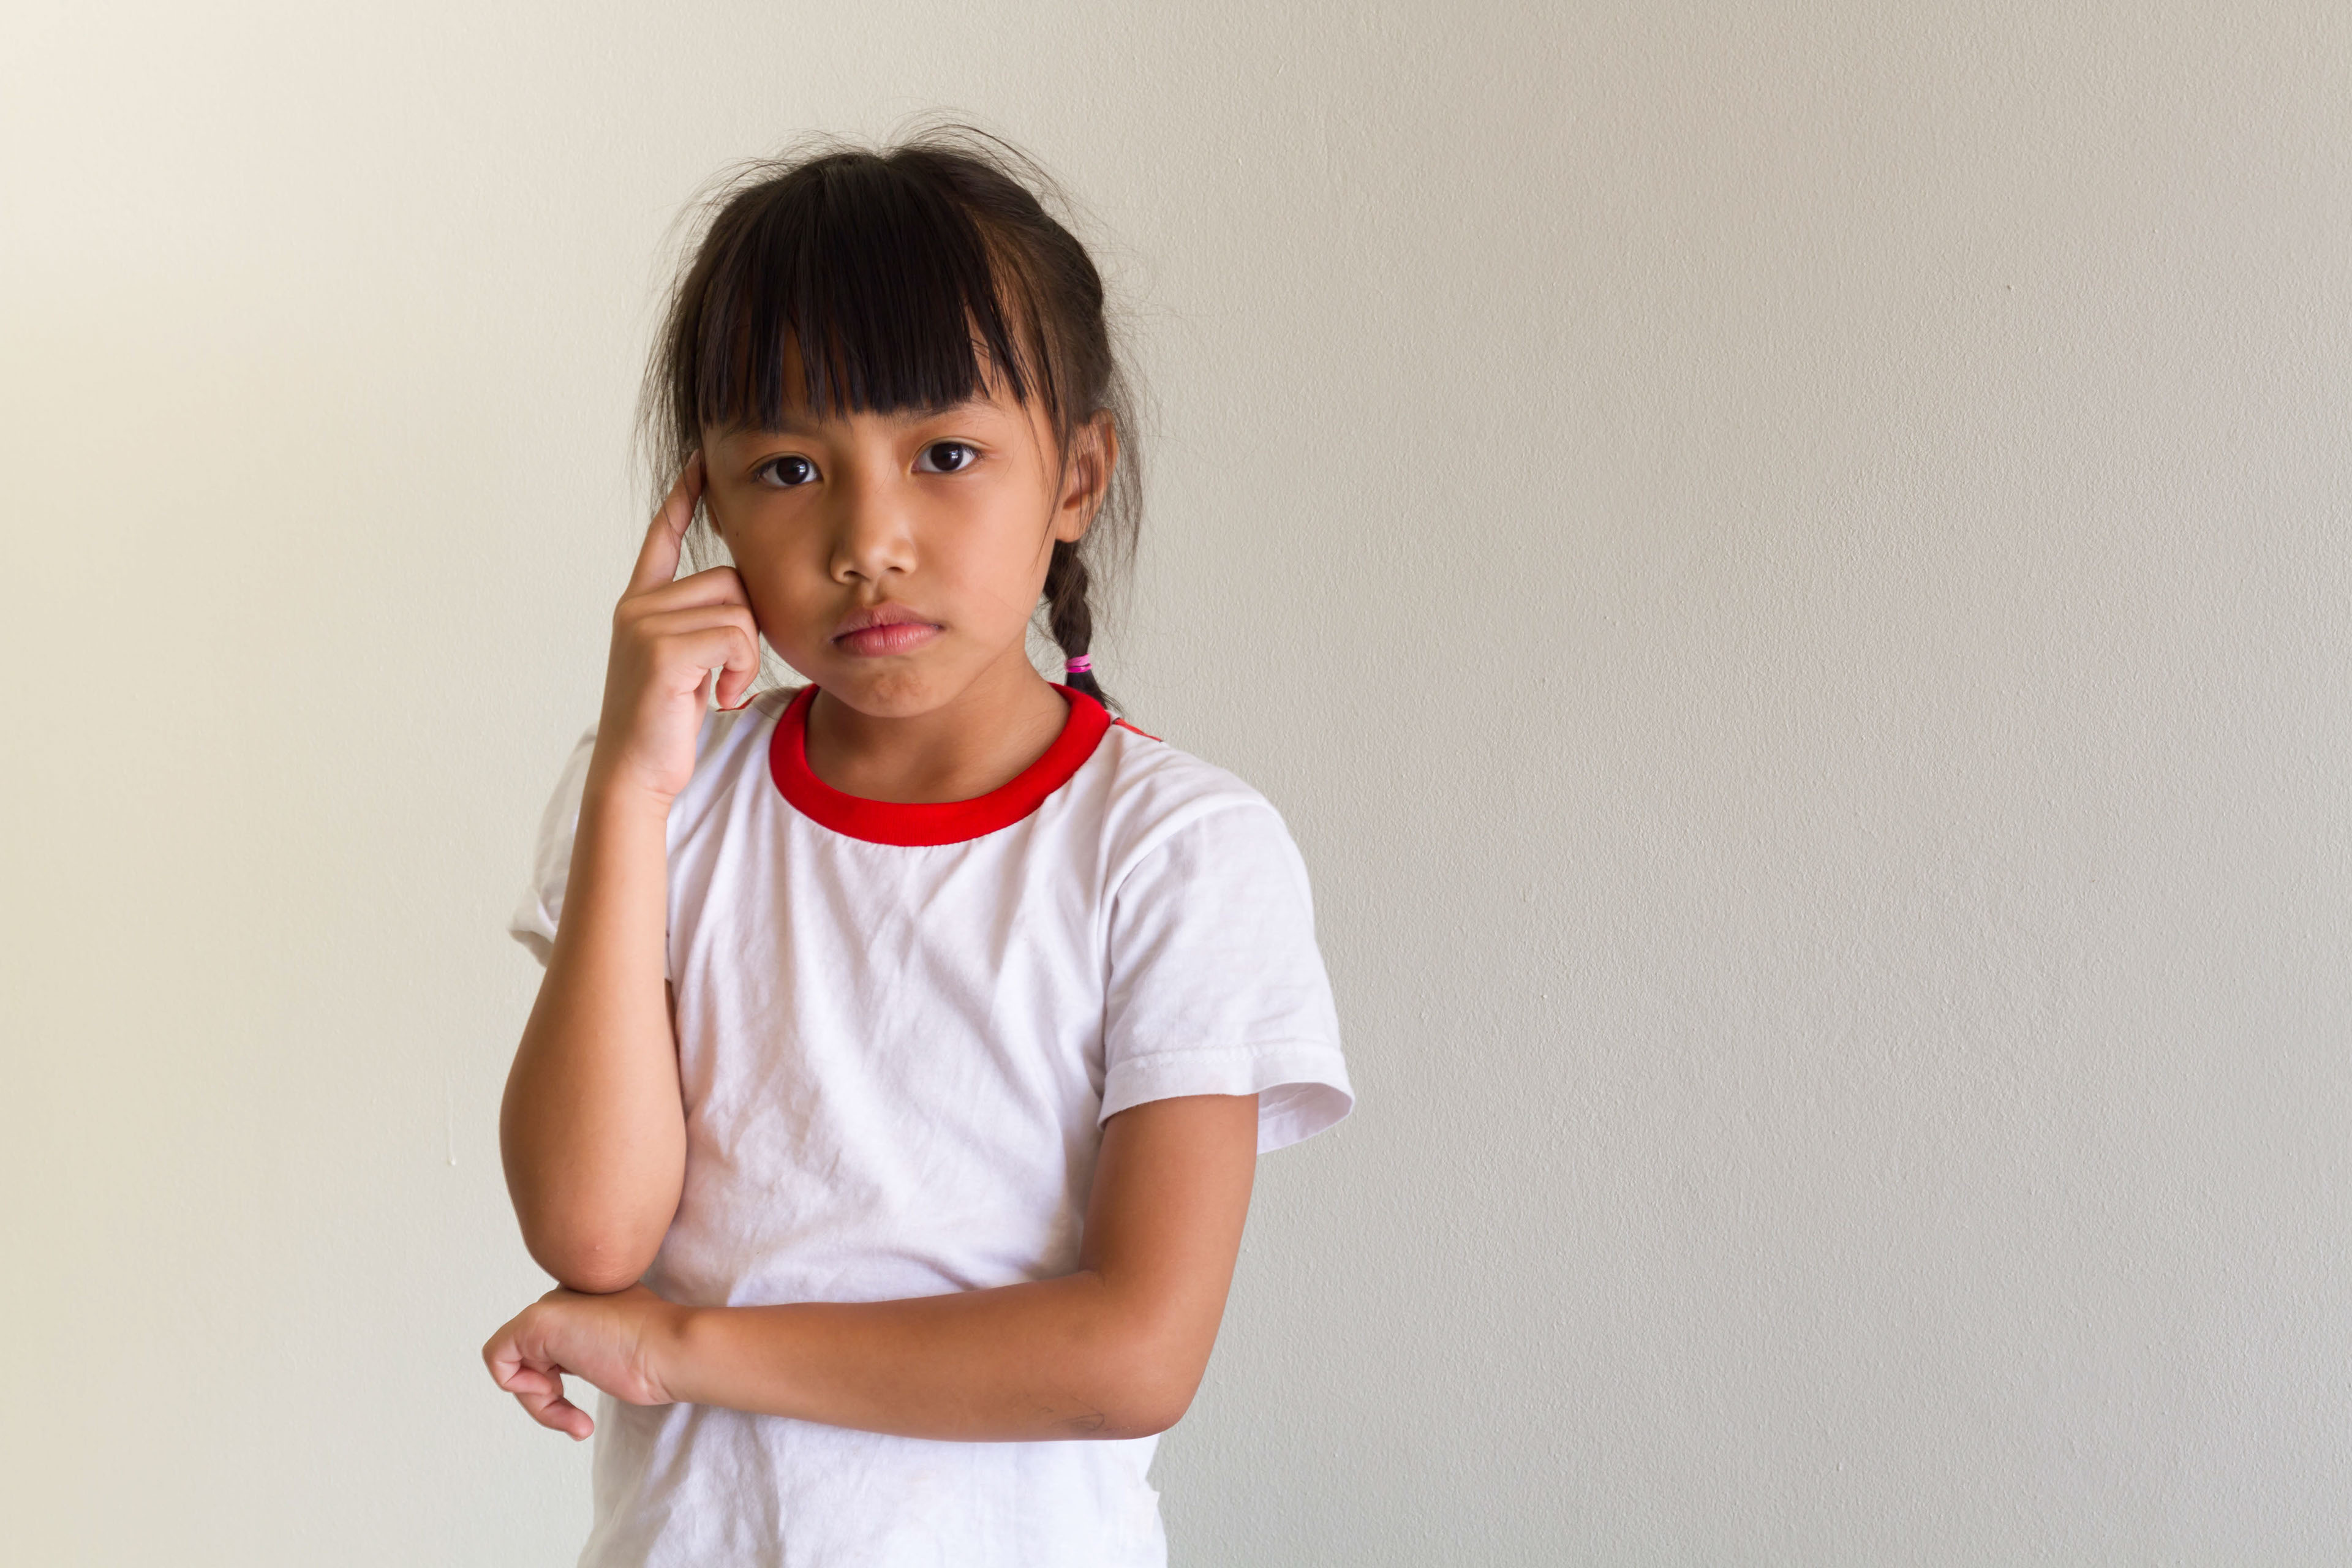 M/ Pictures of asian kids